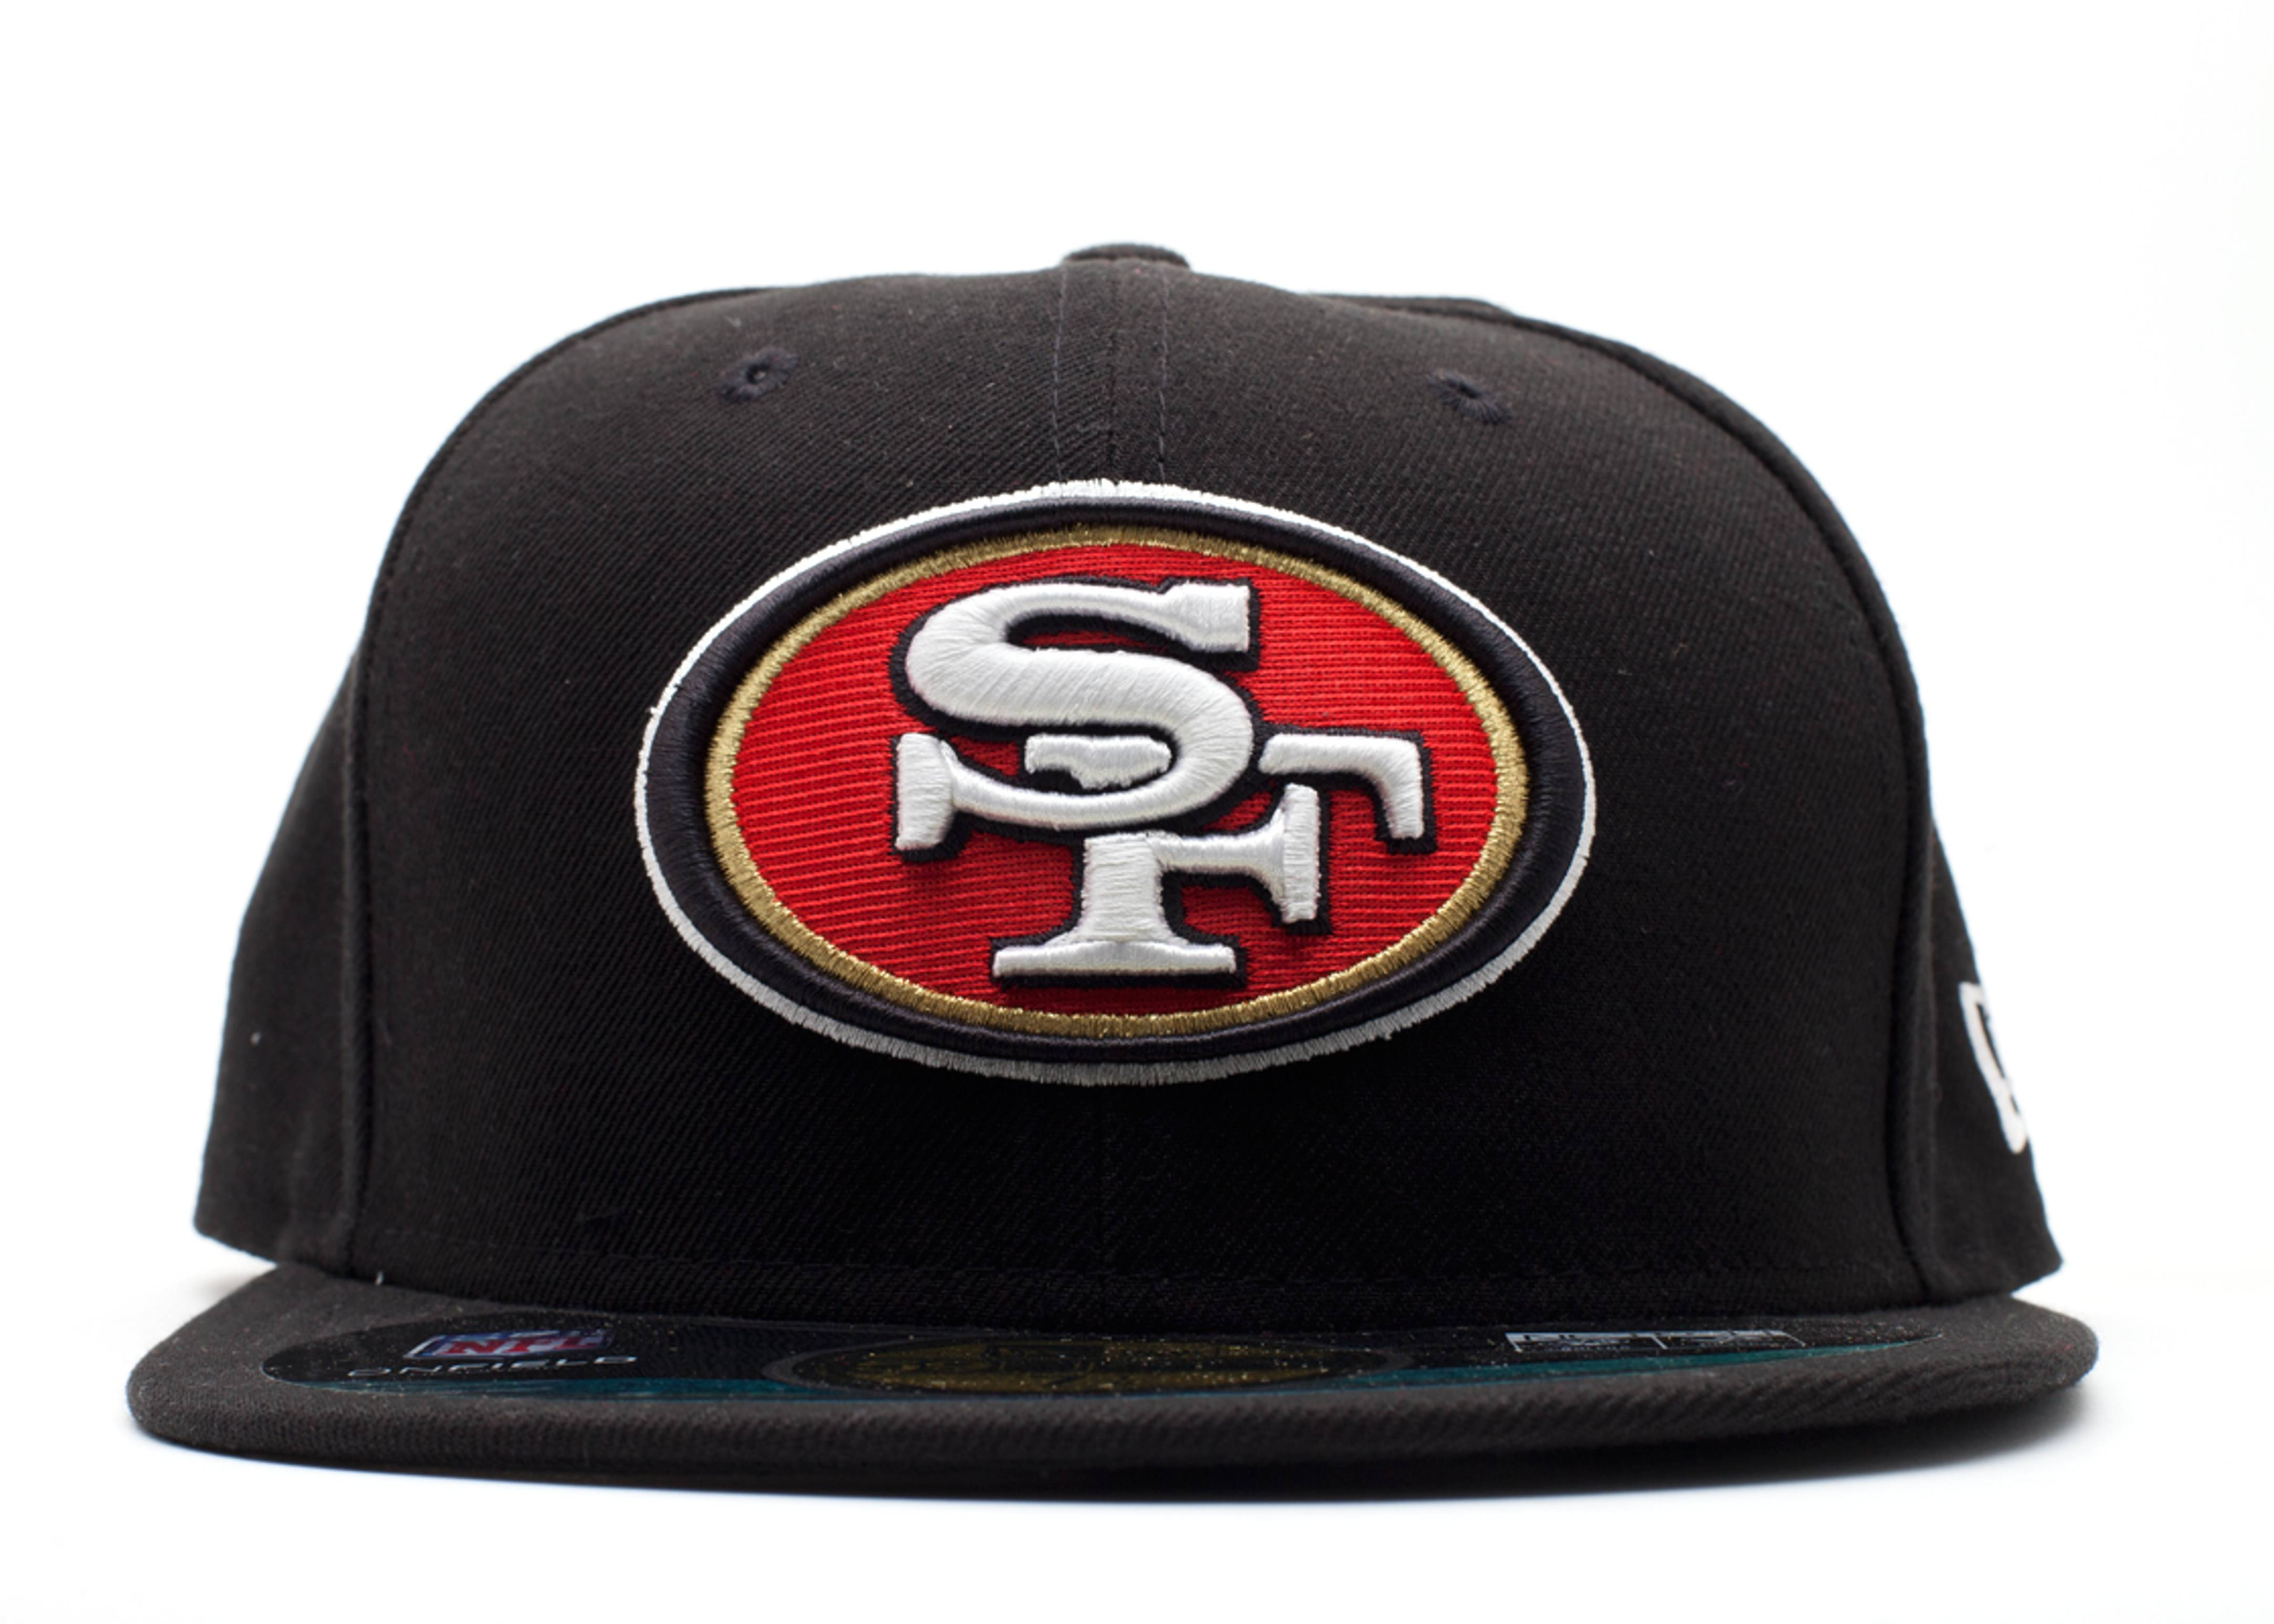 san francisco 49ers fitted